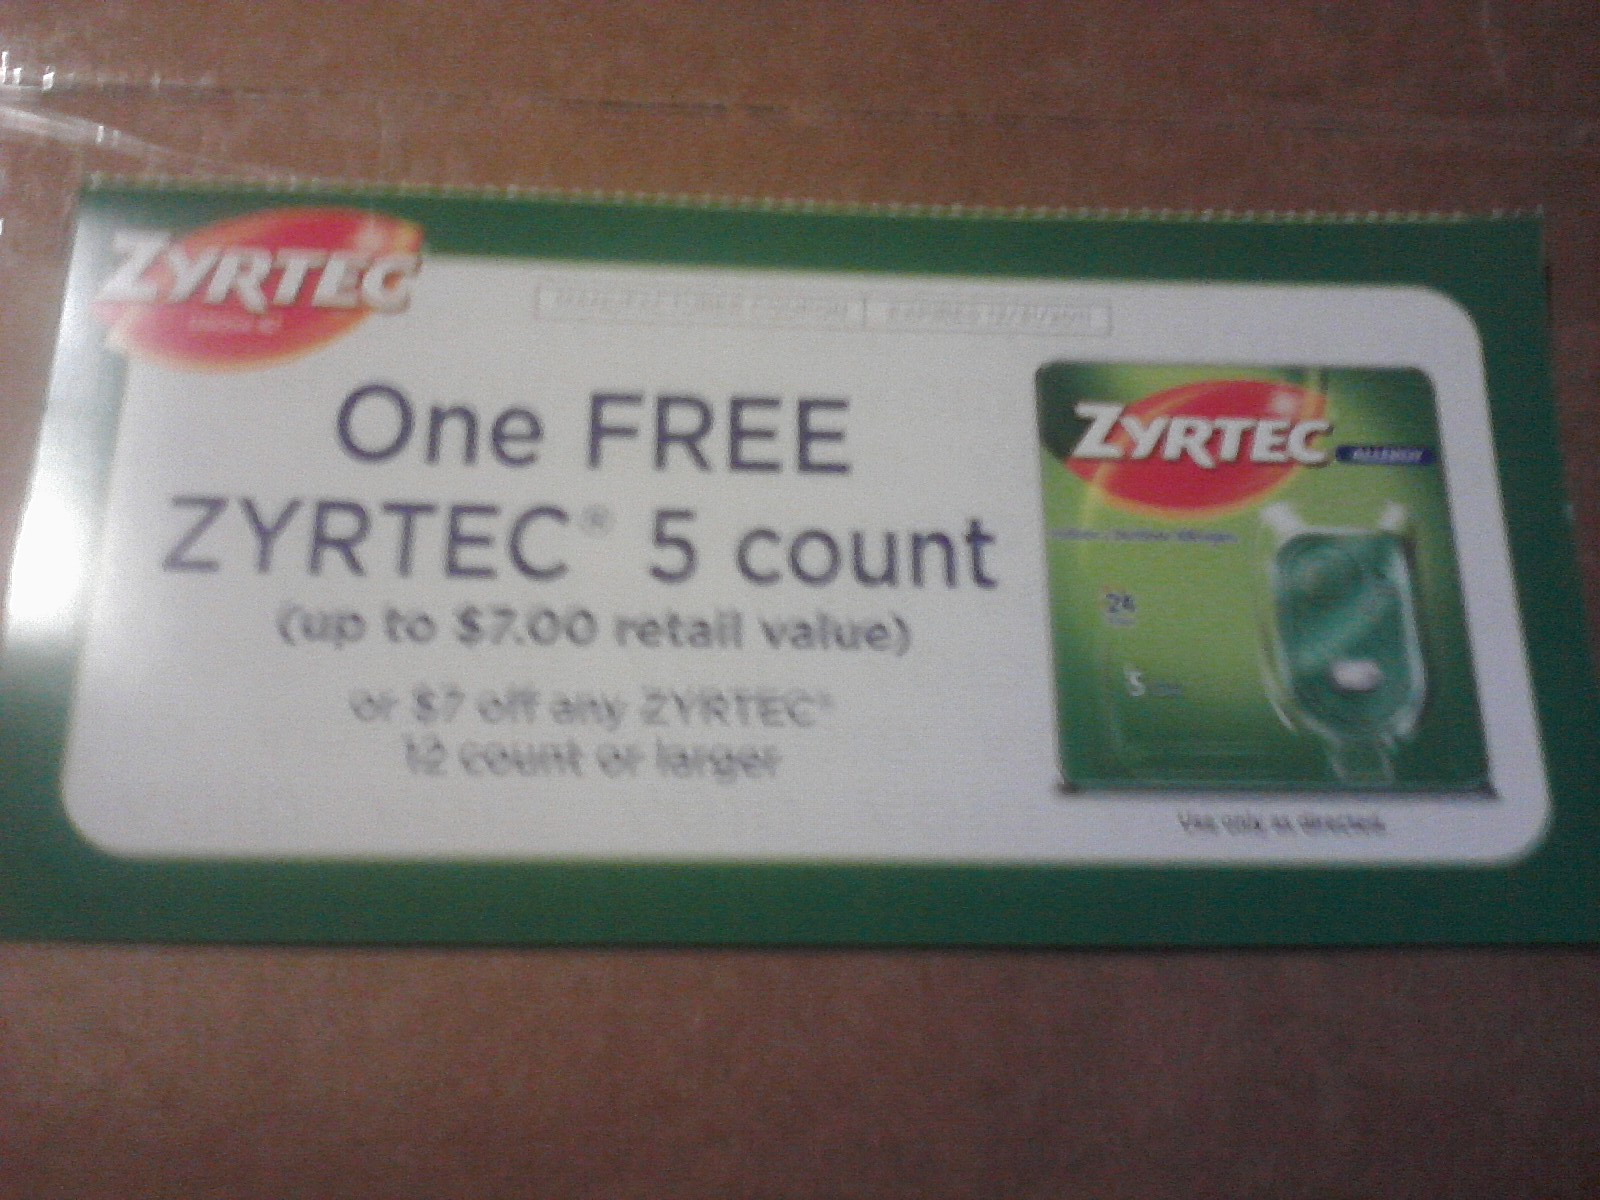 graphic regarding Zyrtec Coupon Printable referred to as Zyrtec d coupon codes printable - Beauty freebies united kingdom